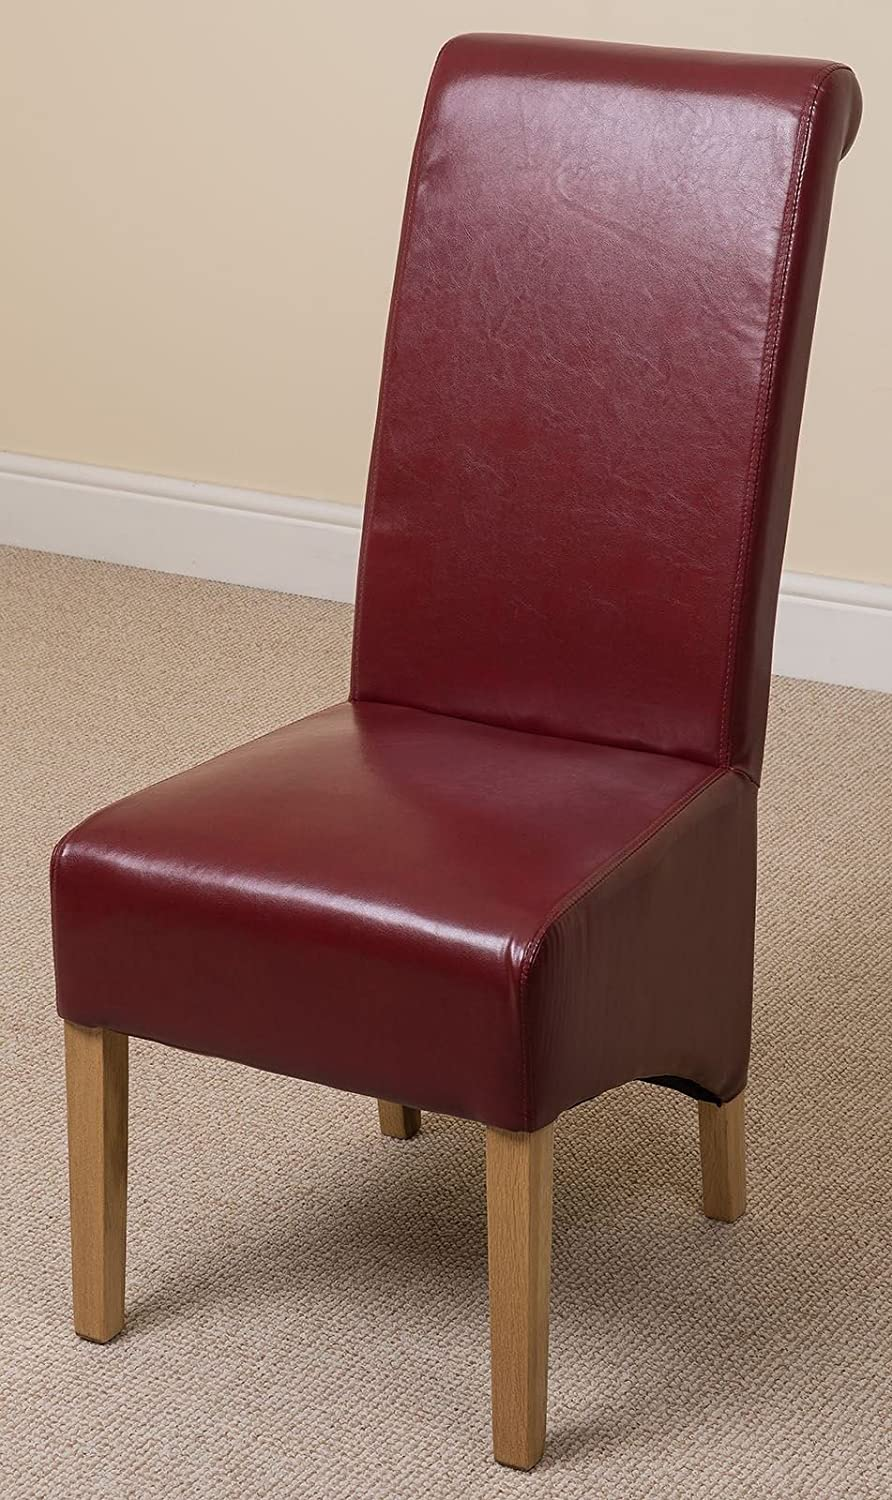 MODERN FURNITURE DIRECT MONTANA LEATHER DINING CHAIR BURGUNDY Amazoncouk Kitchen Home